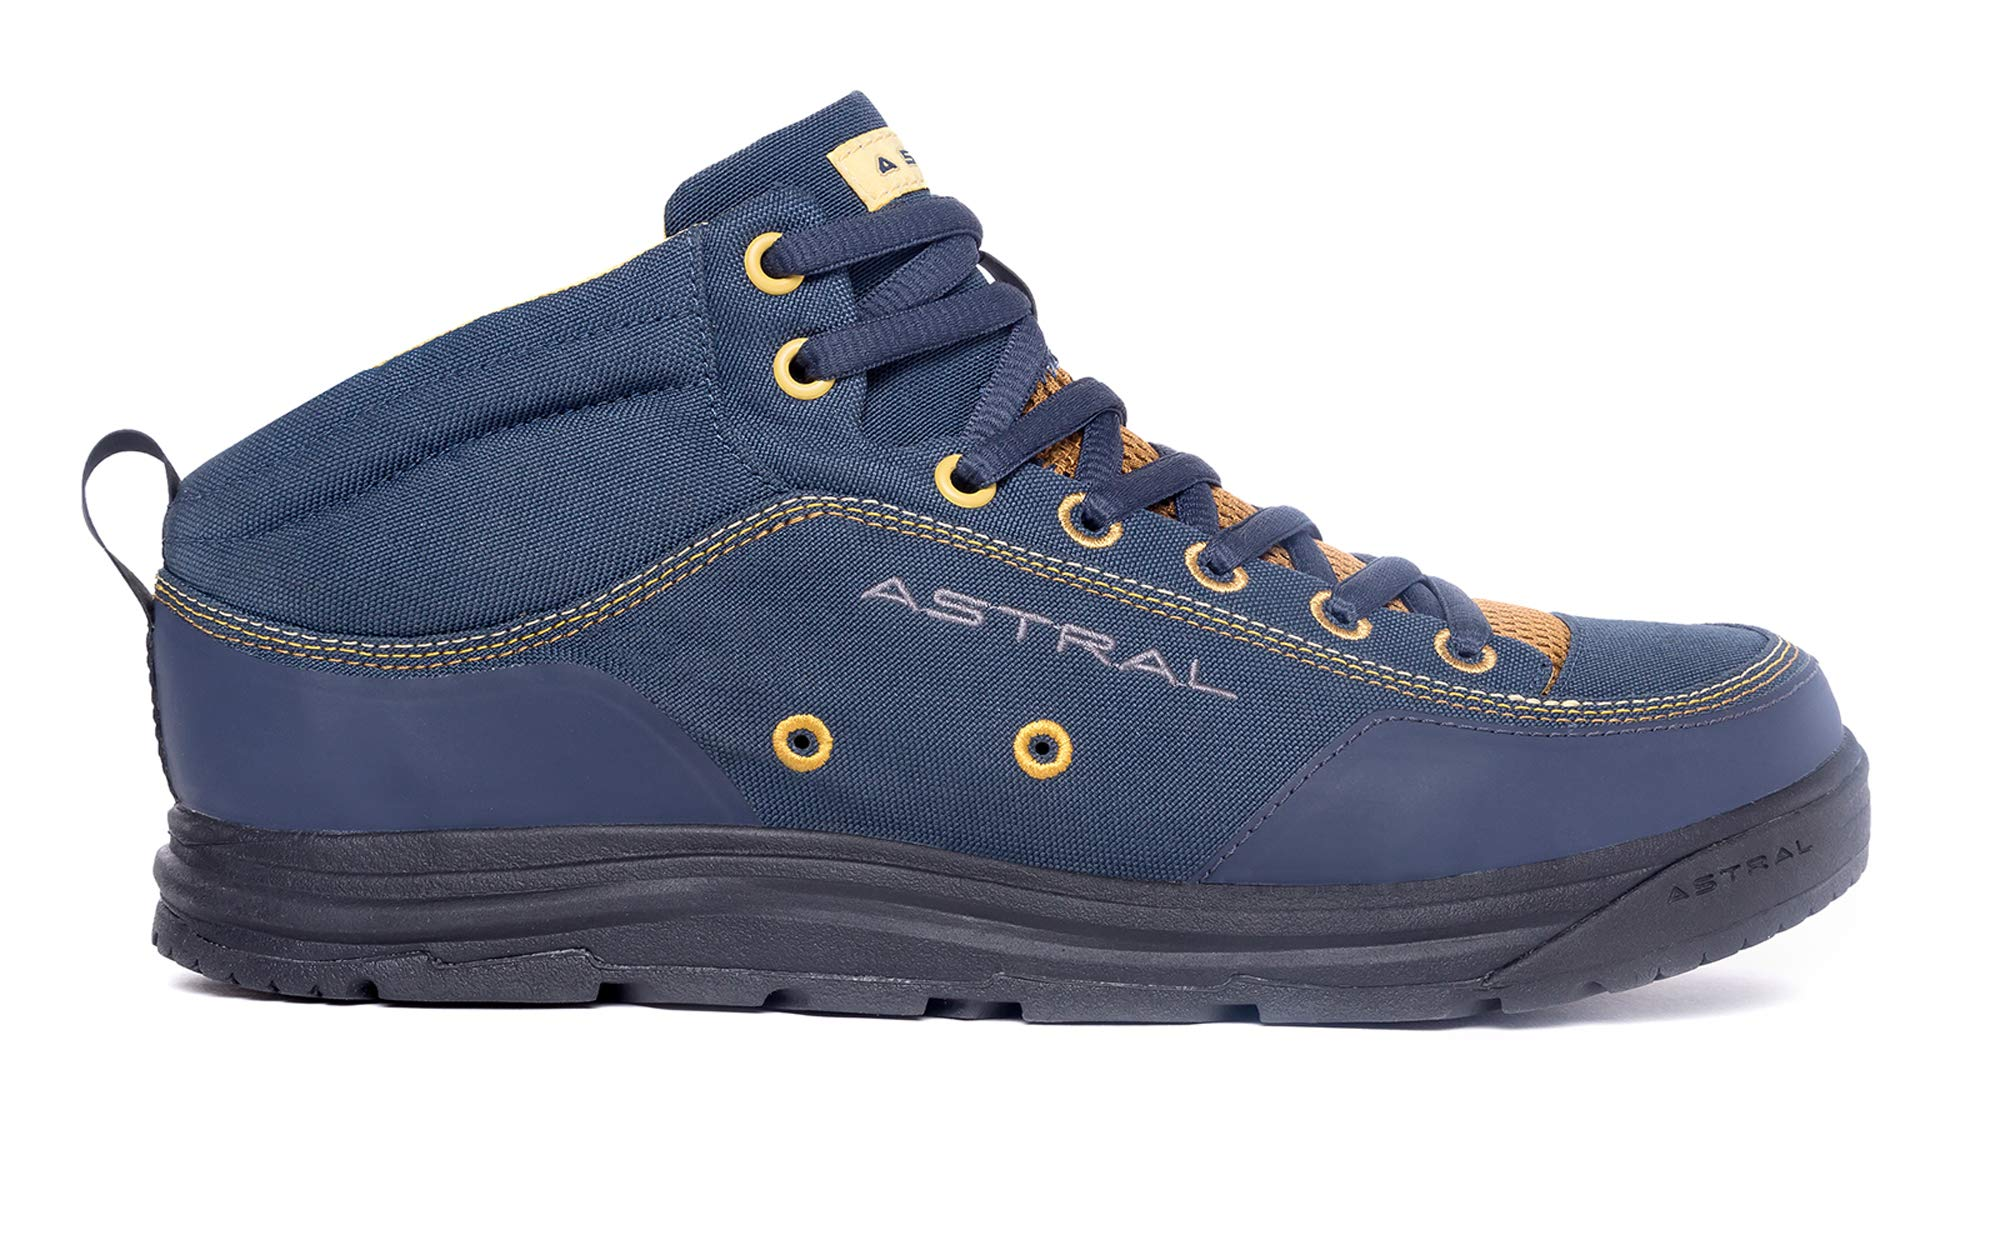 Astral Rassler 2.0 Outdoor Minimalist Shoes, Grippy and Lightweight, Made for Whitewater, Canyoneering, Fly Fishing, and Travel, Storm Navy, Men's 10.5 M US, Women's 11.5 M US by Astral